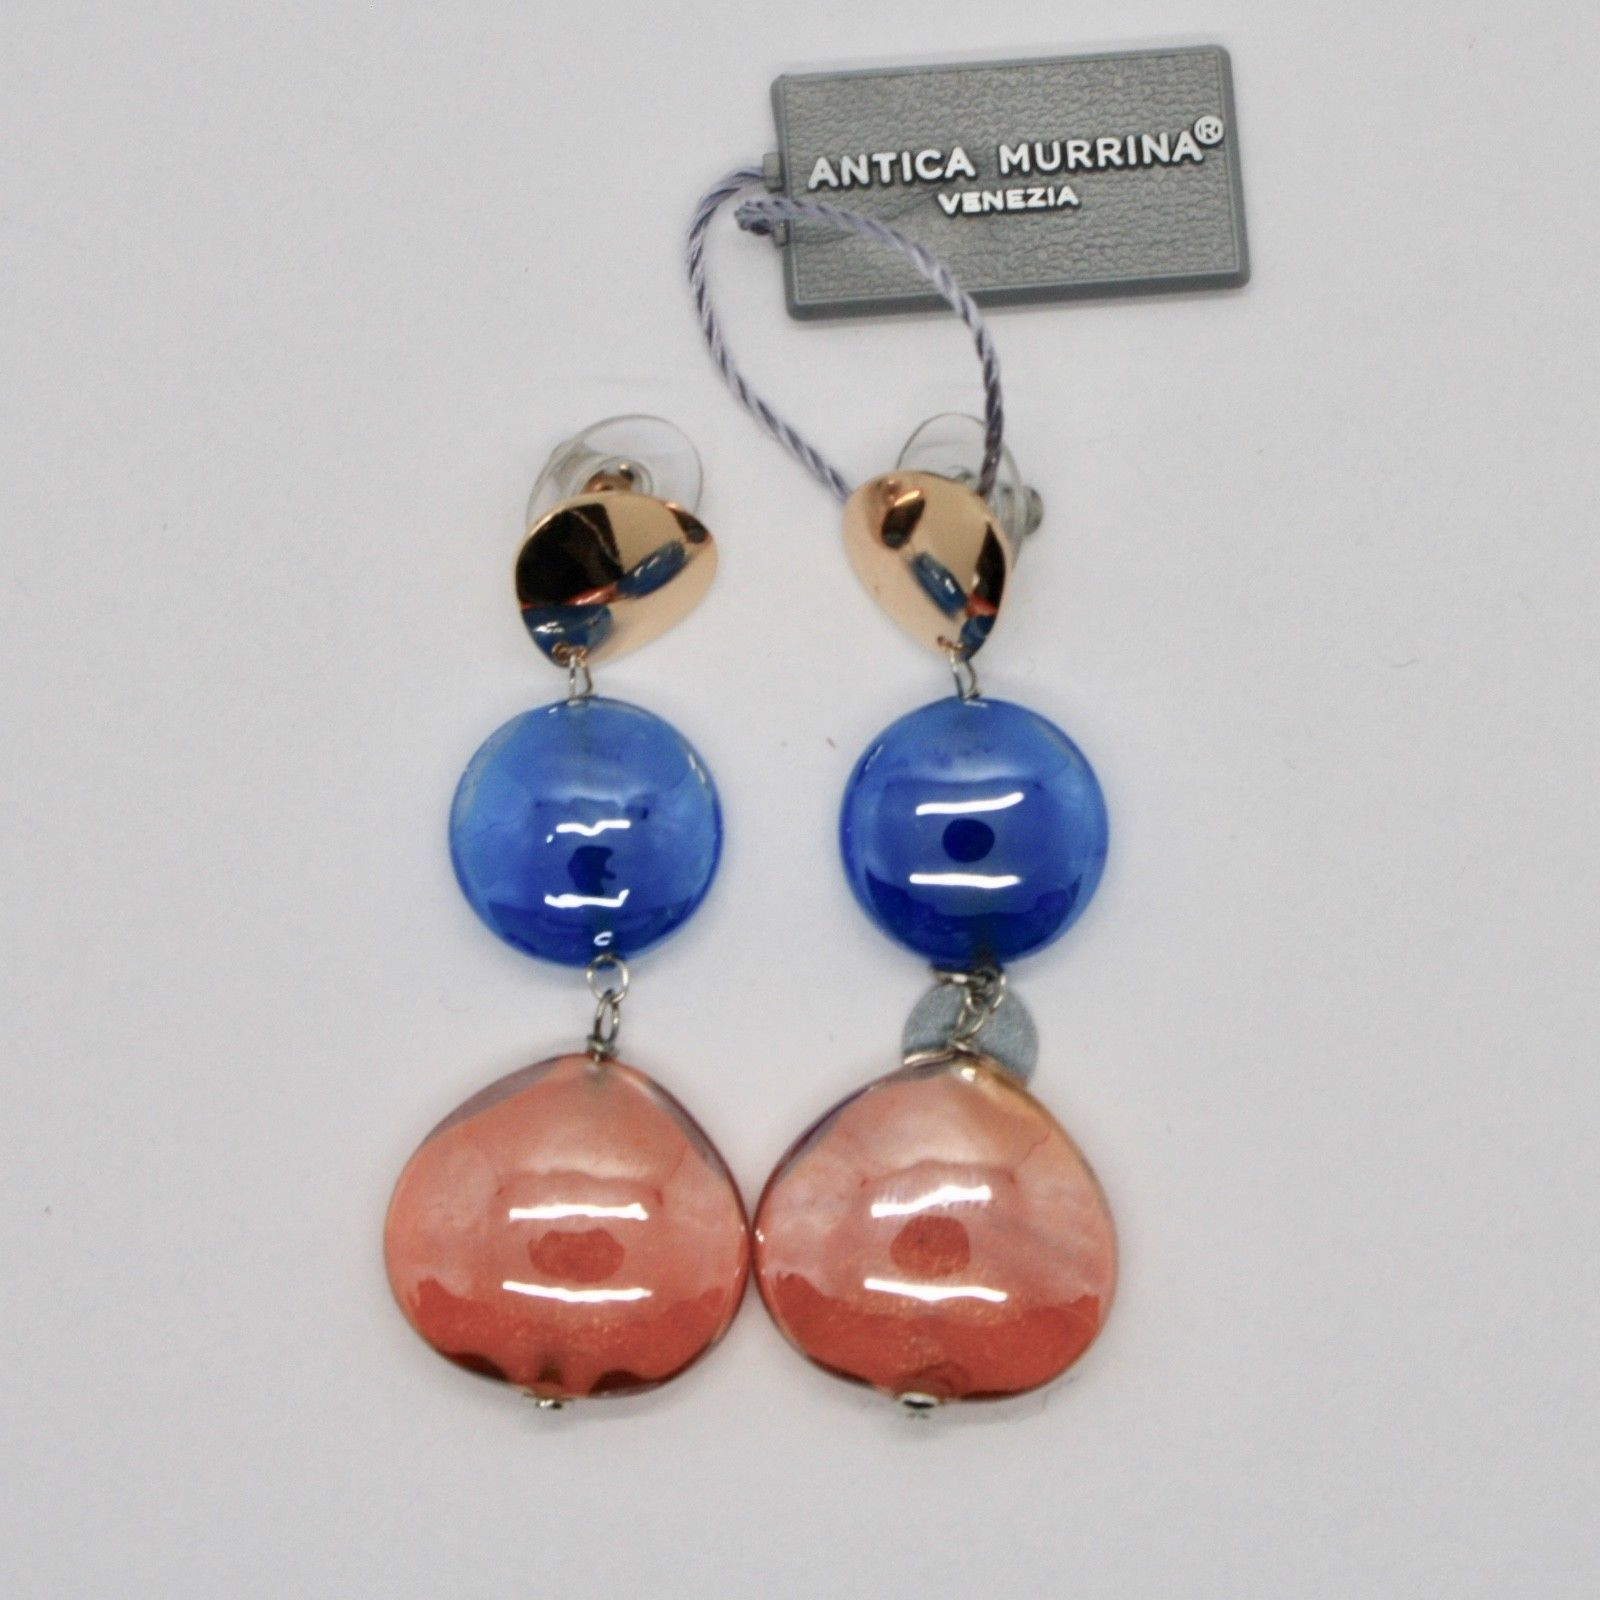 EARRINGS ANTICA MURRINA VENEZIA WITH MURANO GLASS ORANGE AND BLUE OR589A46